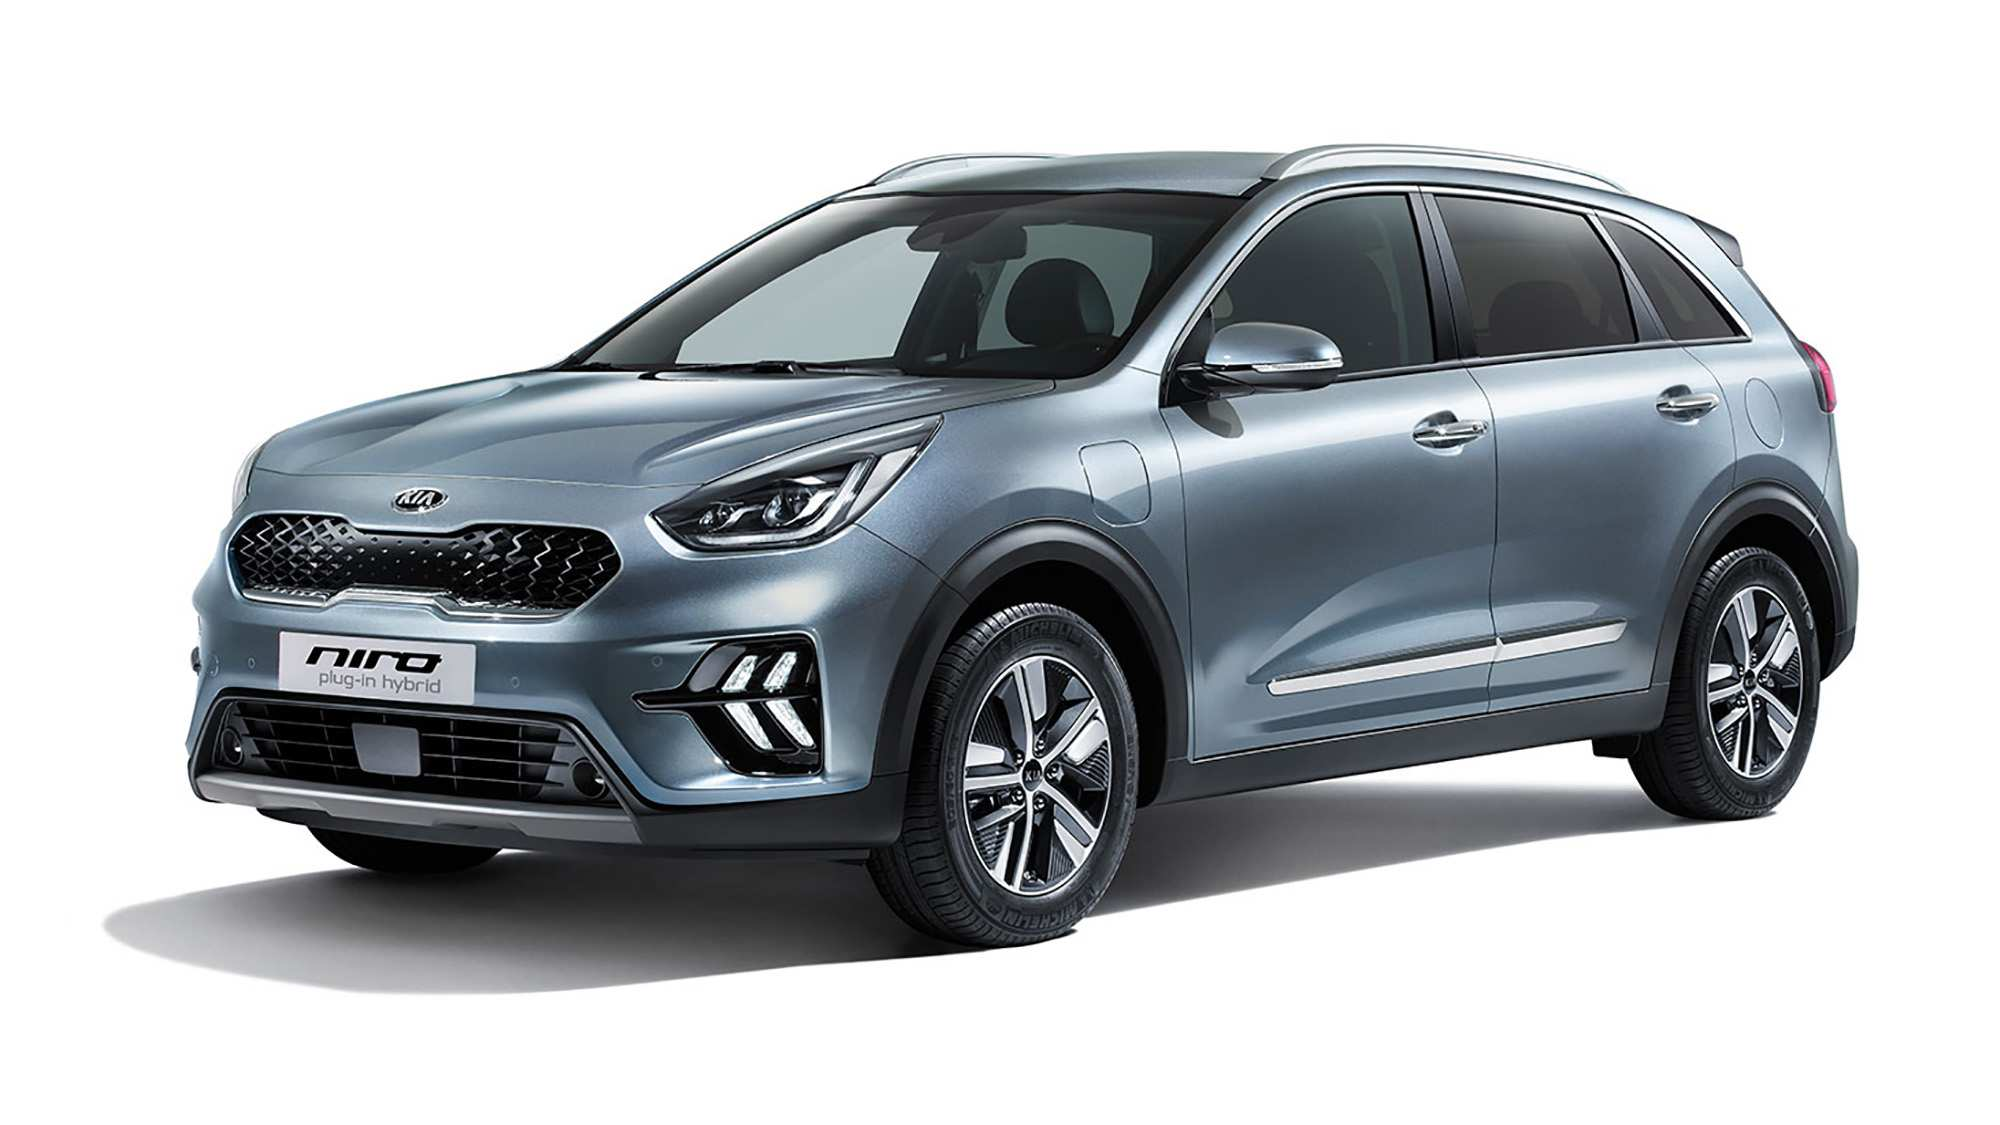 80 Gallery of Kia Niro 2020 Release Date Prices for Kia Niro 2020 Release Date